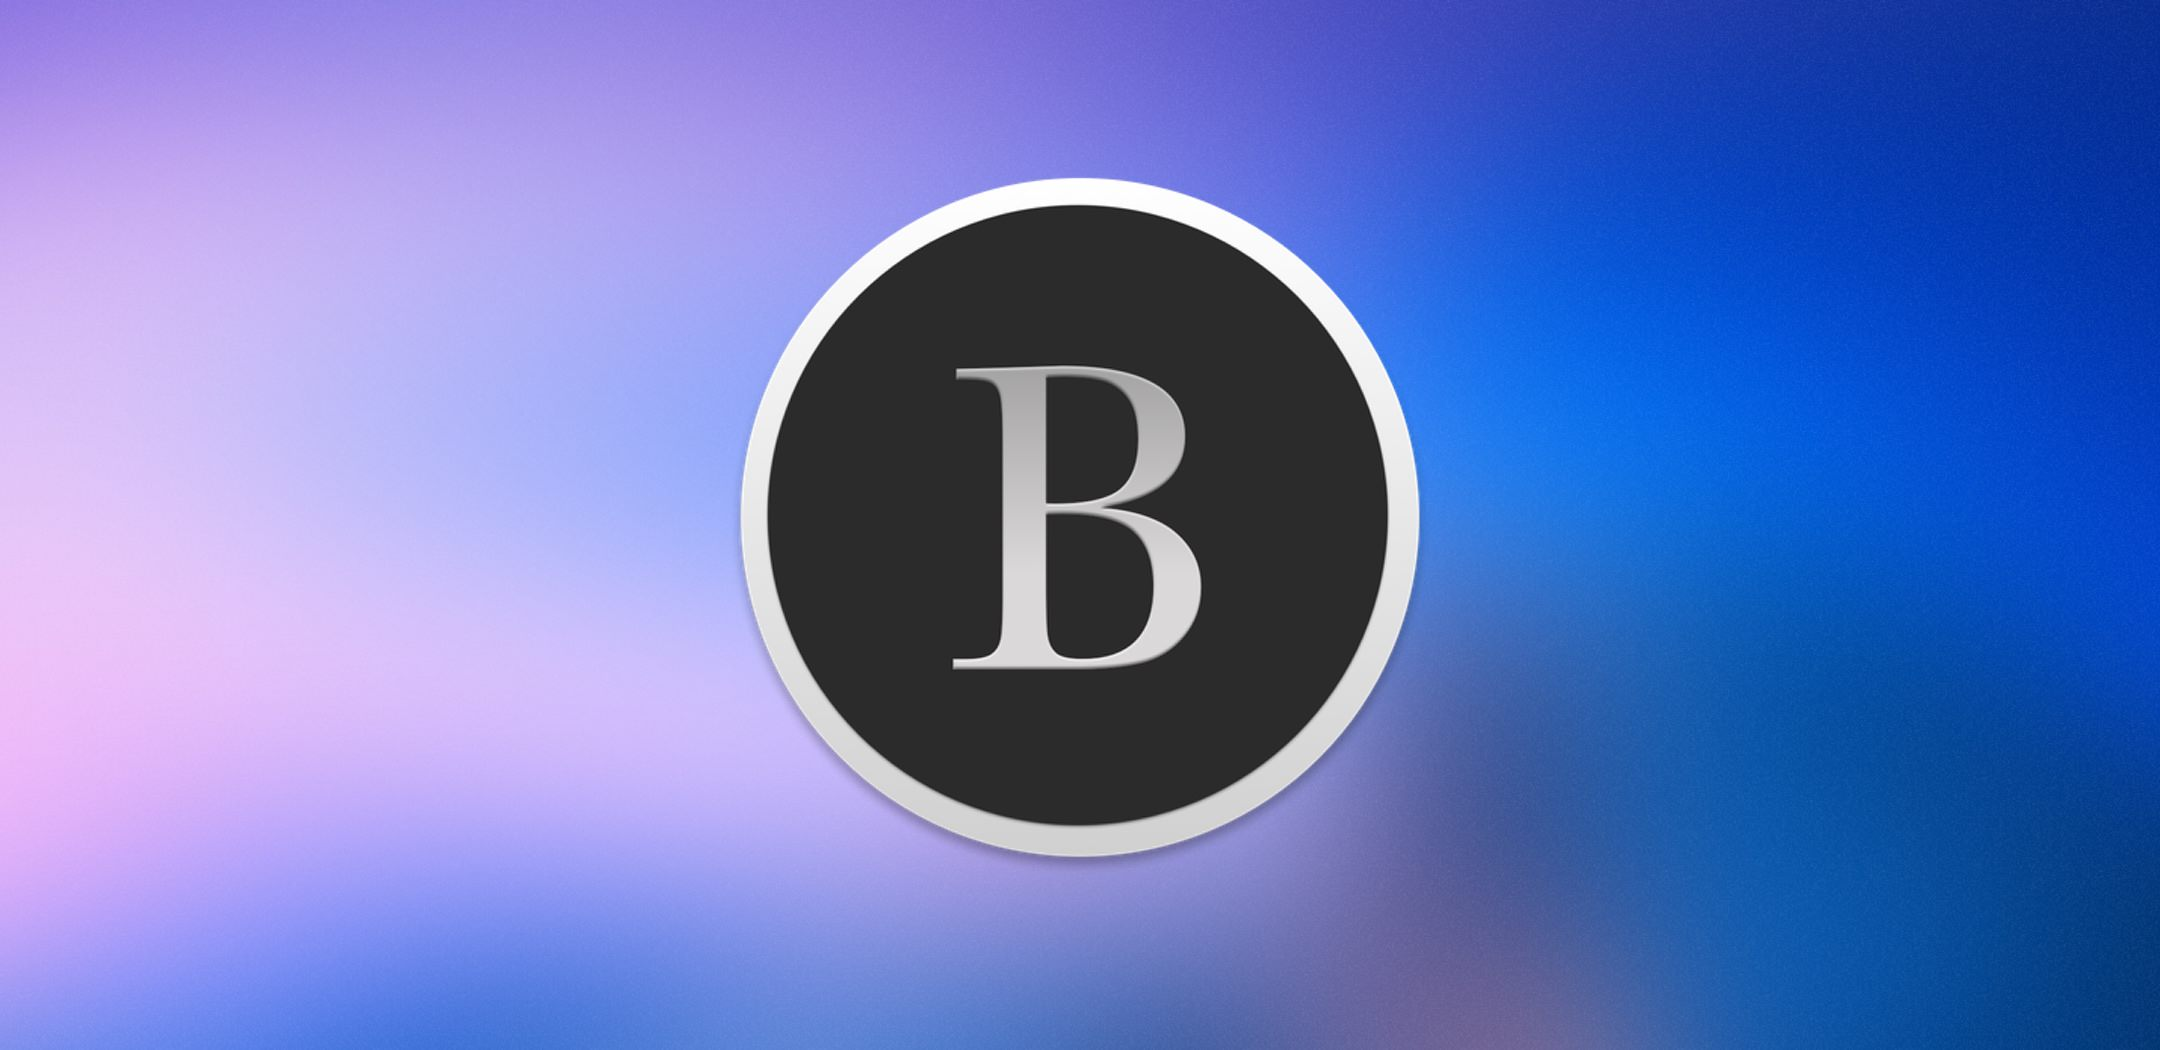 Iconos OS X Yosemite: Byword